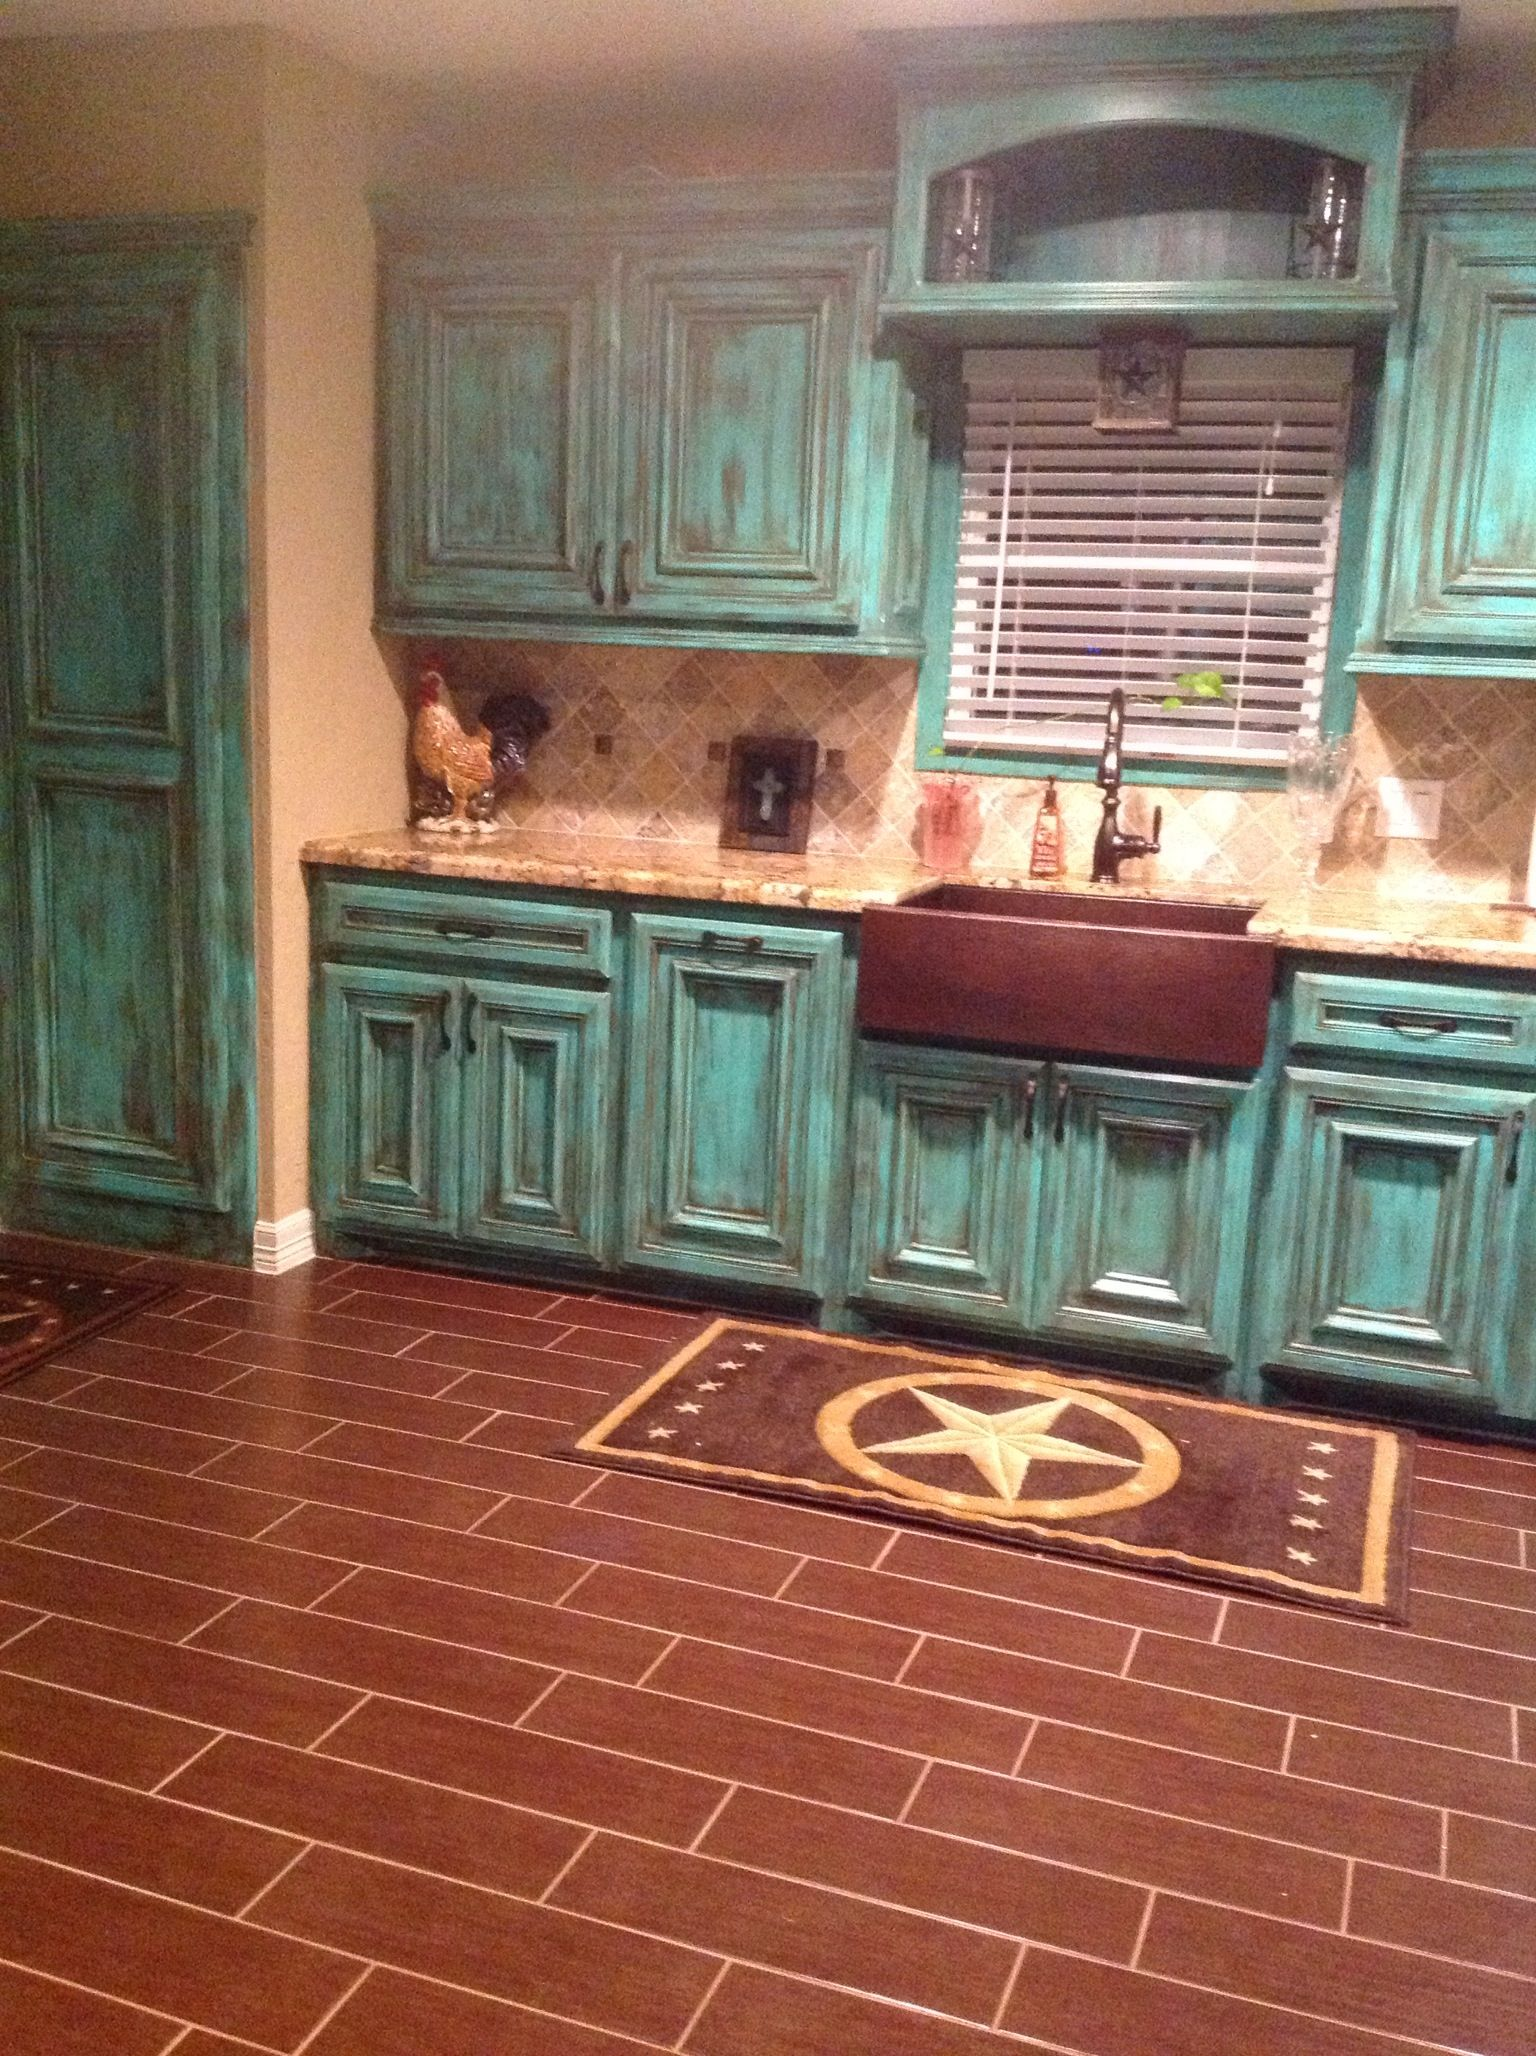 Western Style Kitchen Cabinets Rustic Turquoise Kitchen Love The Cabinets And The Sink